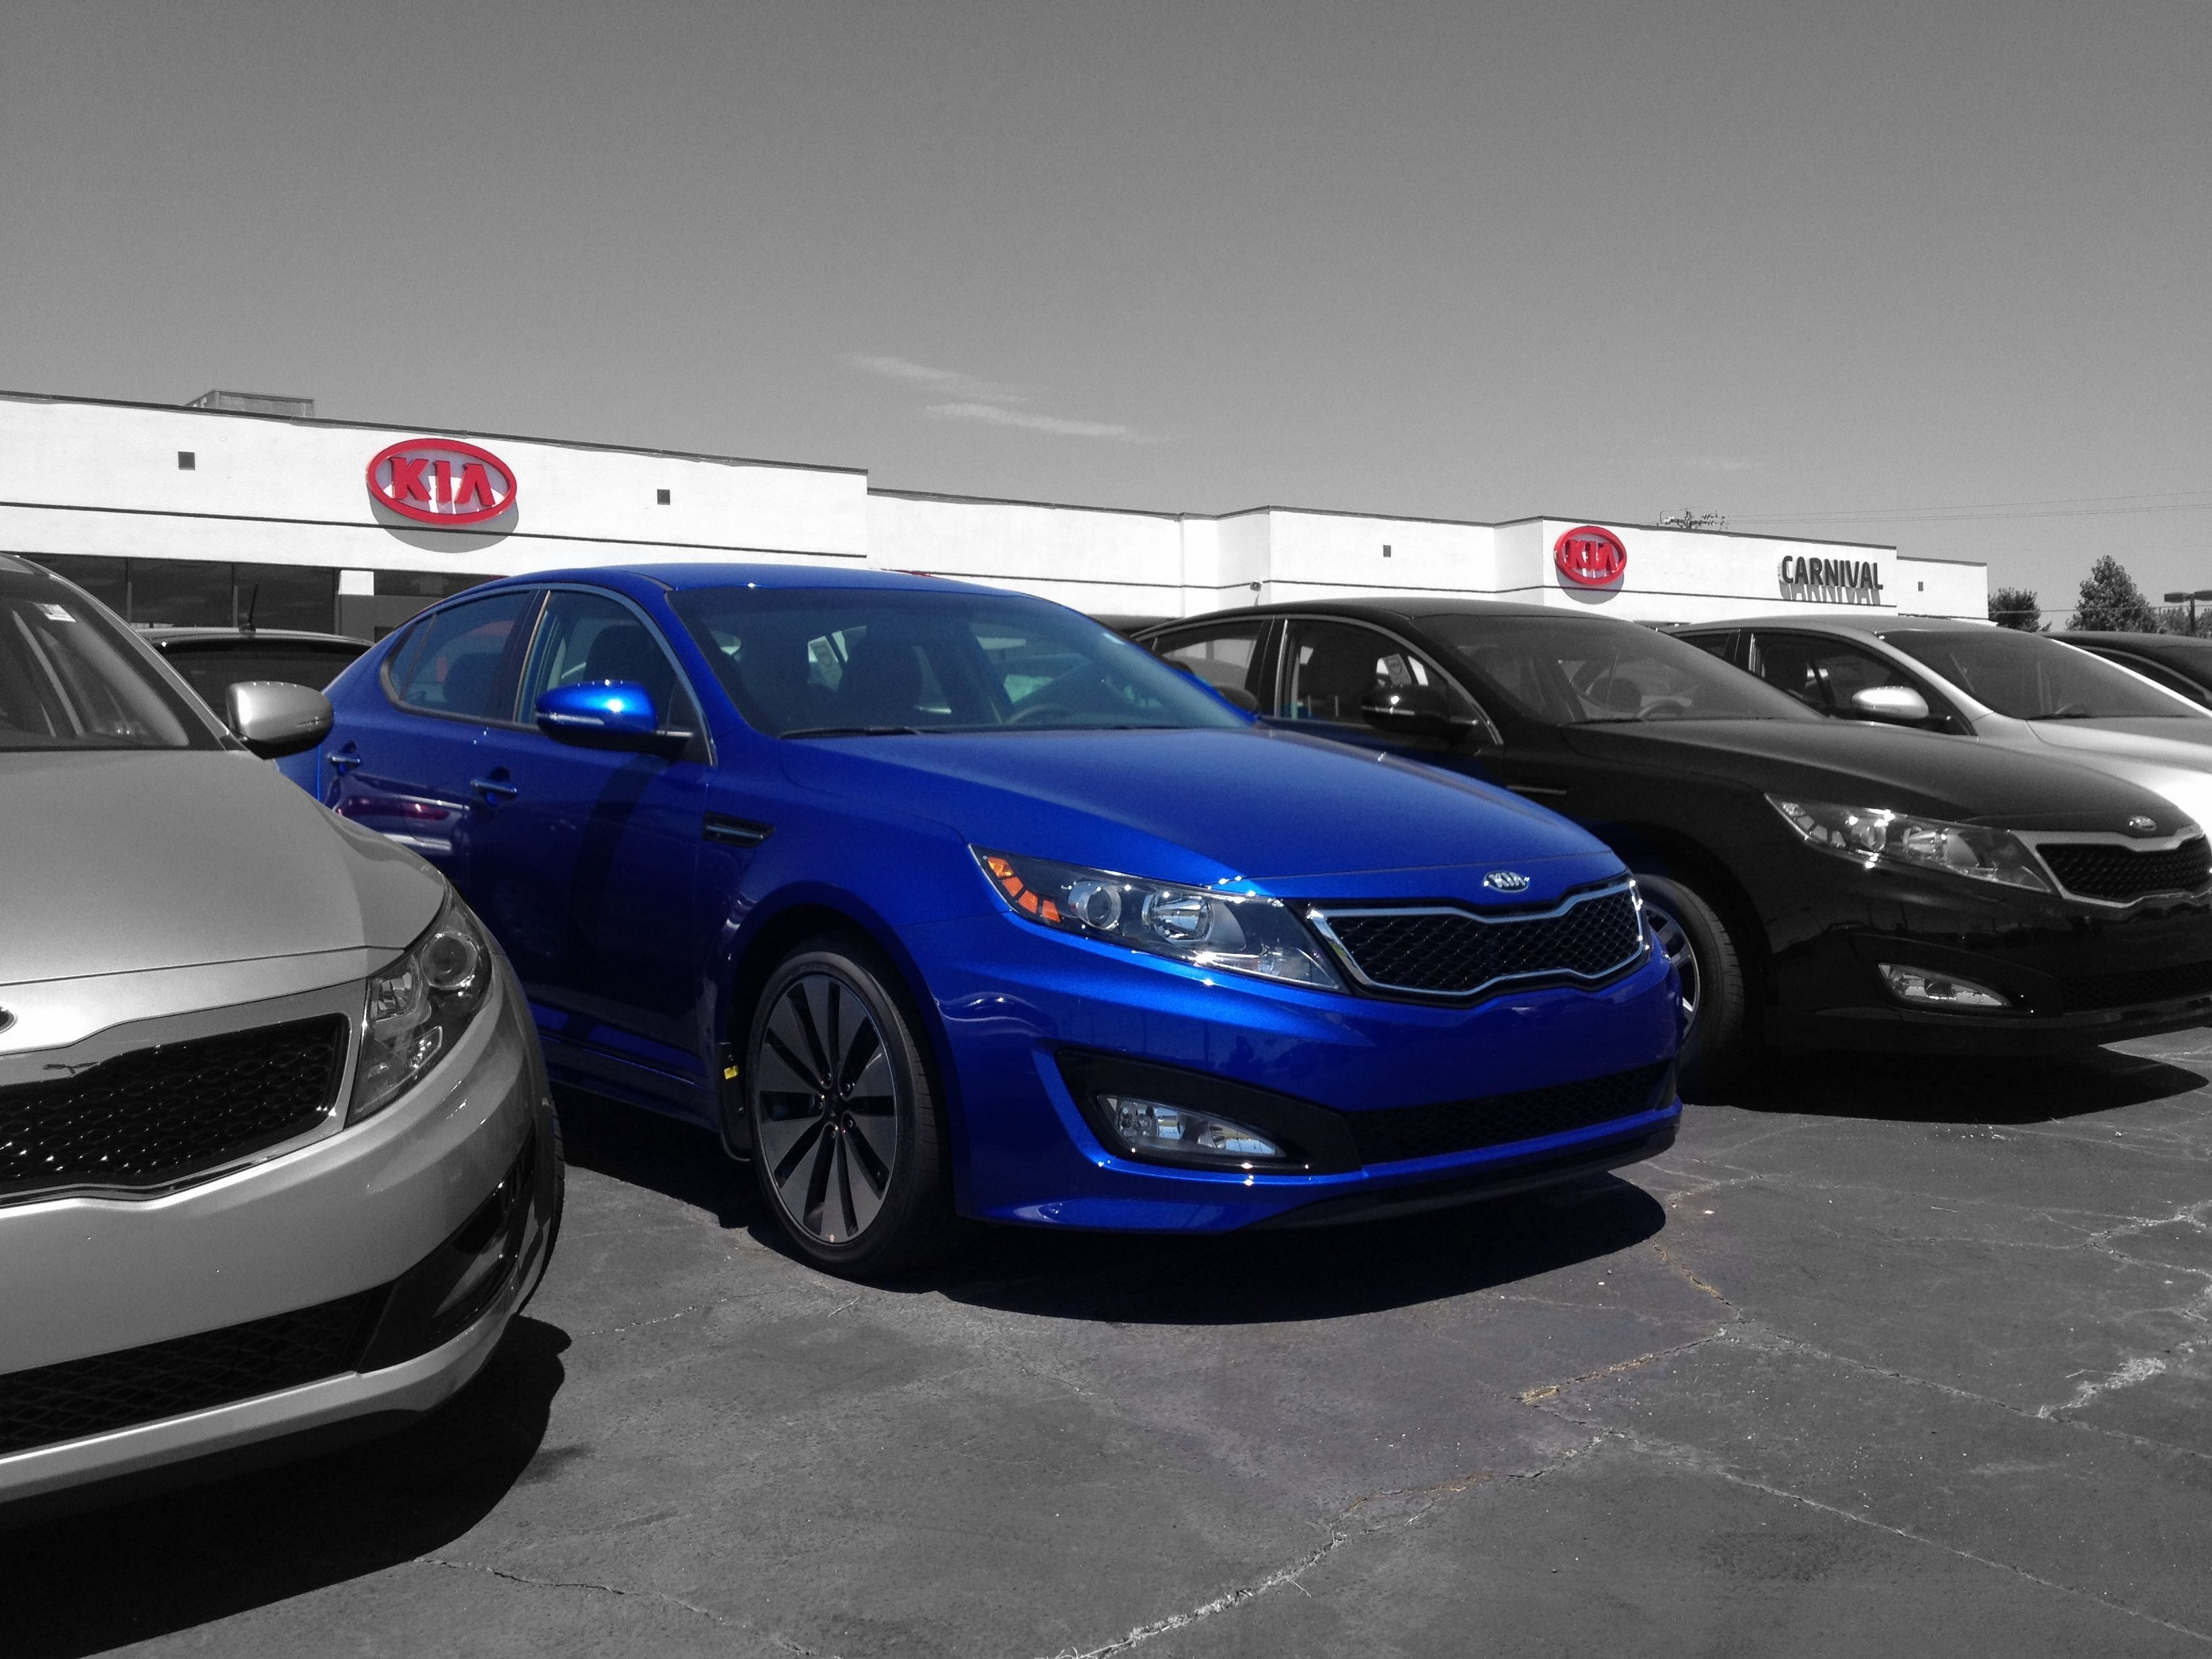 2013 kia optima sx in corsa blue photo courtesy of skip. Black Bedroom Furniture Sets. Home Design Ideas